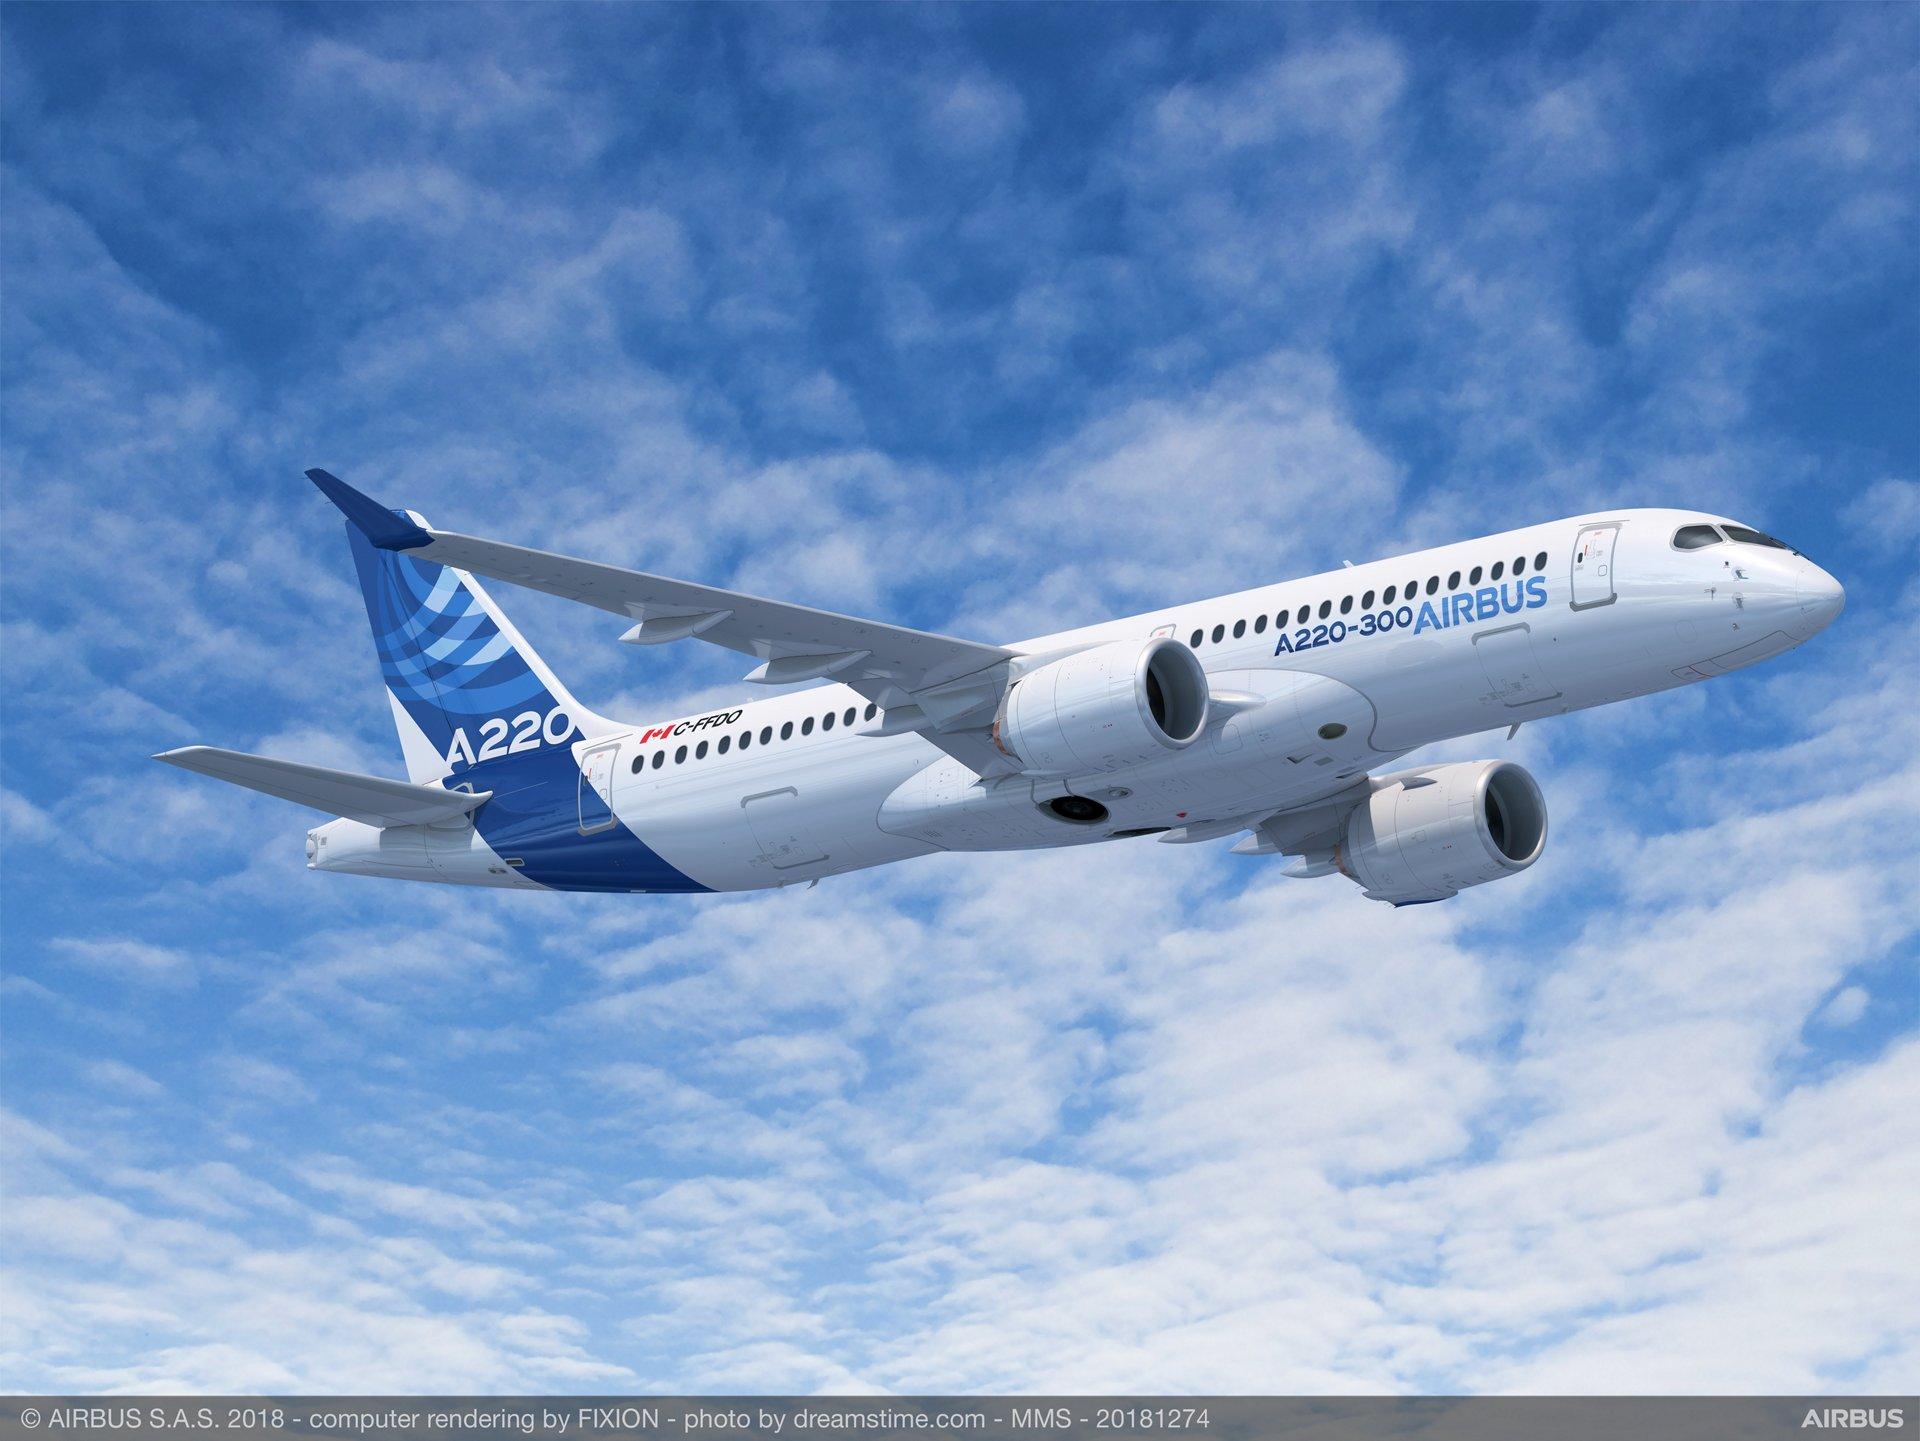 With lower costs per trip than larger single-aisle aircraft, the Airbus A220-300 allows airlines to connect distant points on continents or sectors that were previously unprofitable or impossible